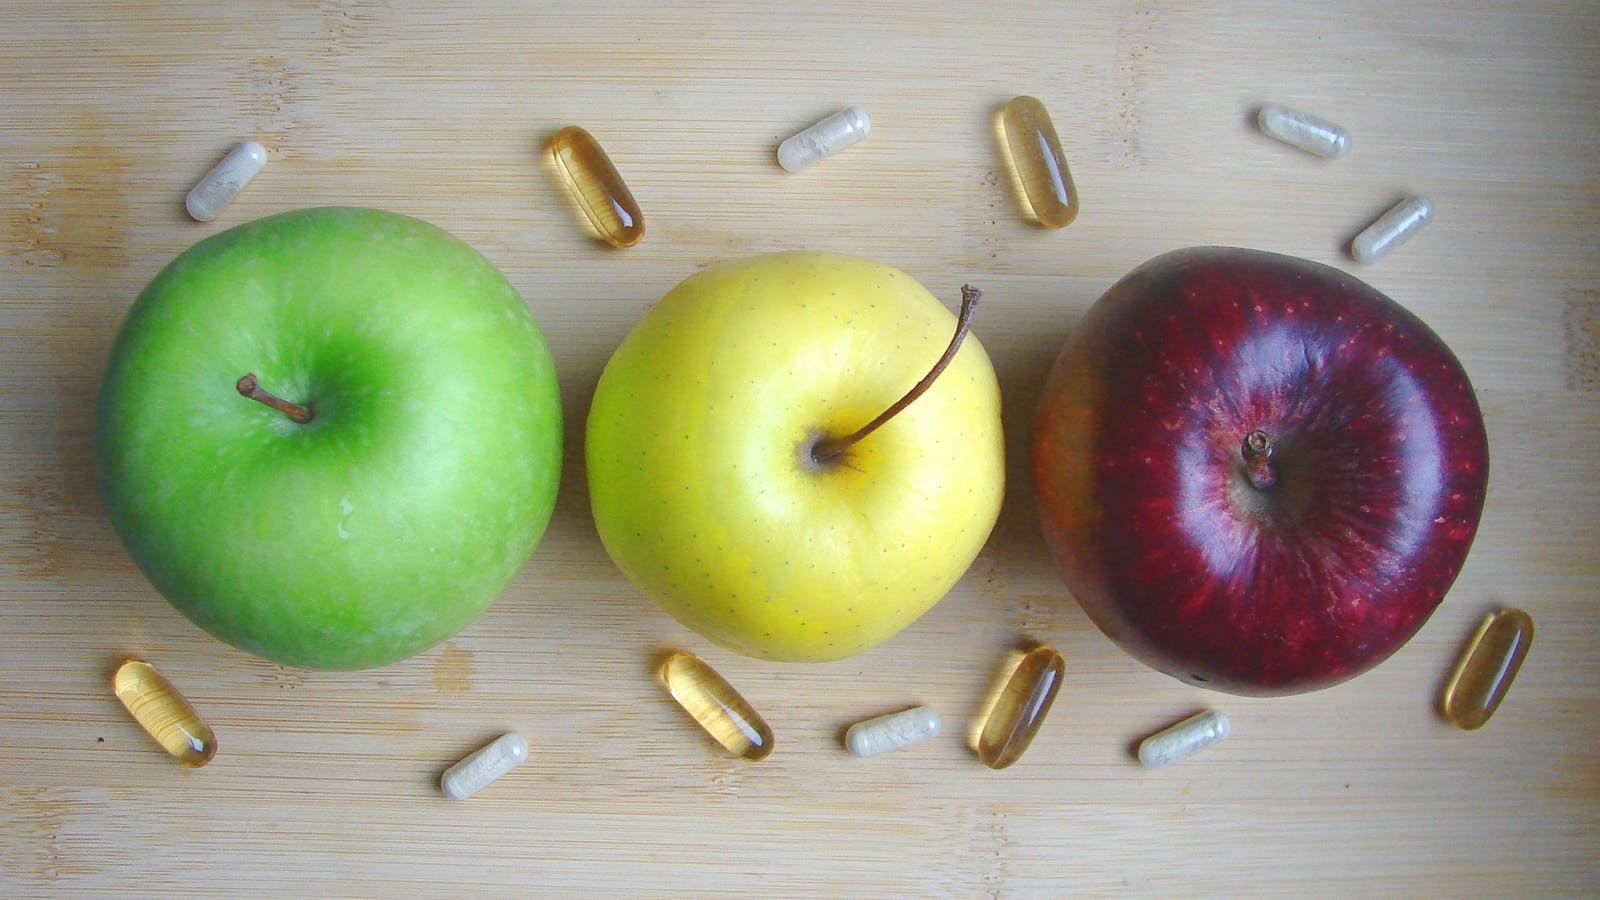 Dietary Supplements and Their Effects on Immunity